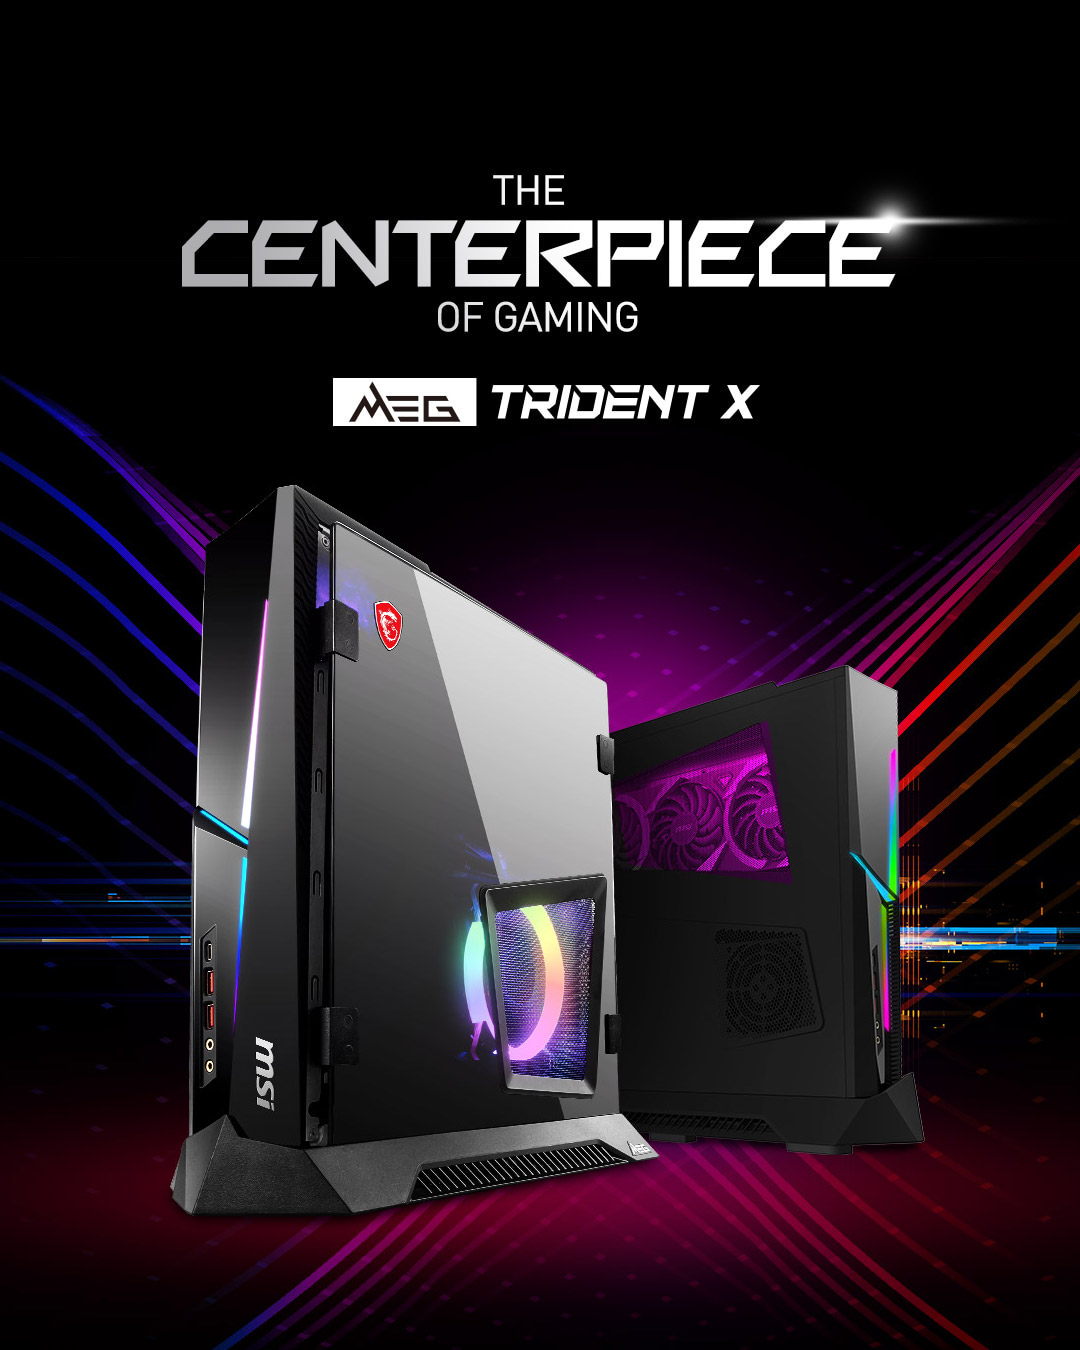 The Centerpiece of Gaming - MEG Trident X